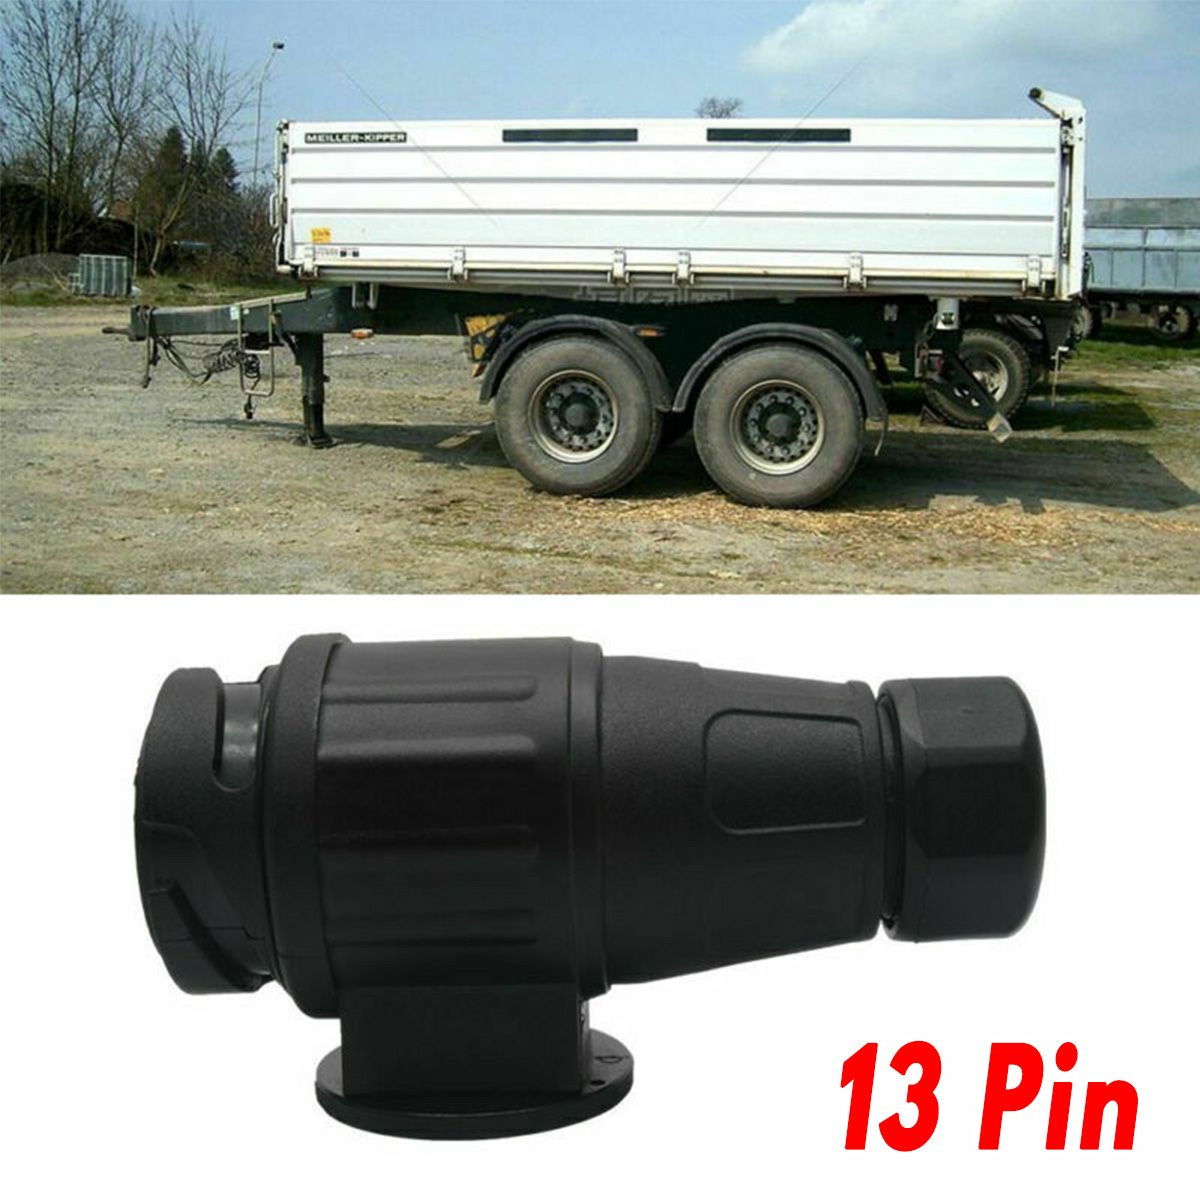 13 PIN CARAVAN PLUG PLASTIC TOWING CONNECTOR TRAILER SELF WIRE MAYPOLE 12V For Caravans And Newer Trailers LEX3018